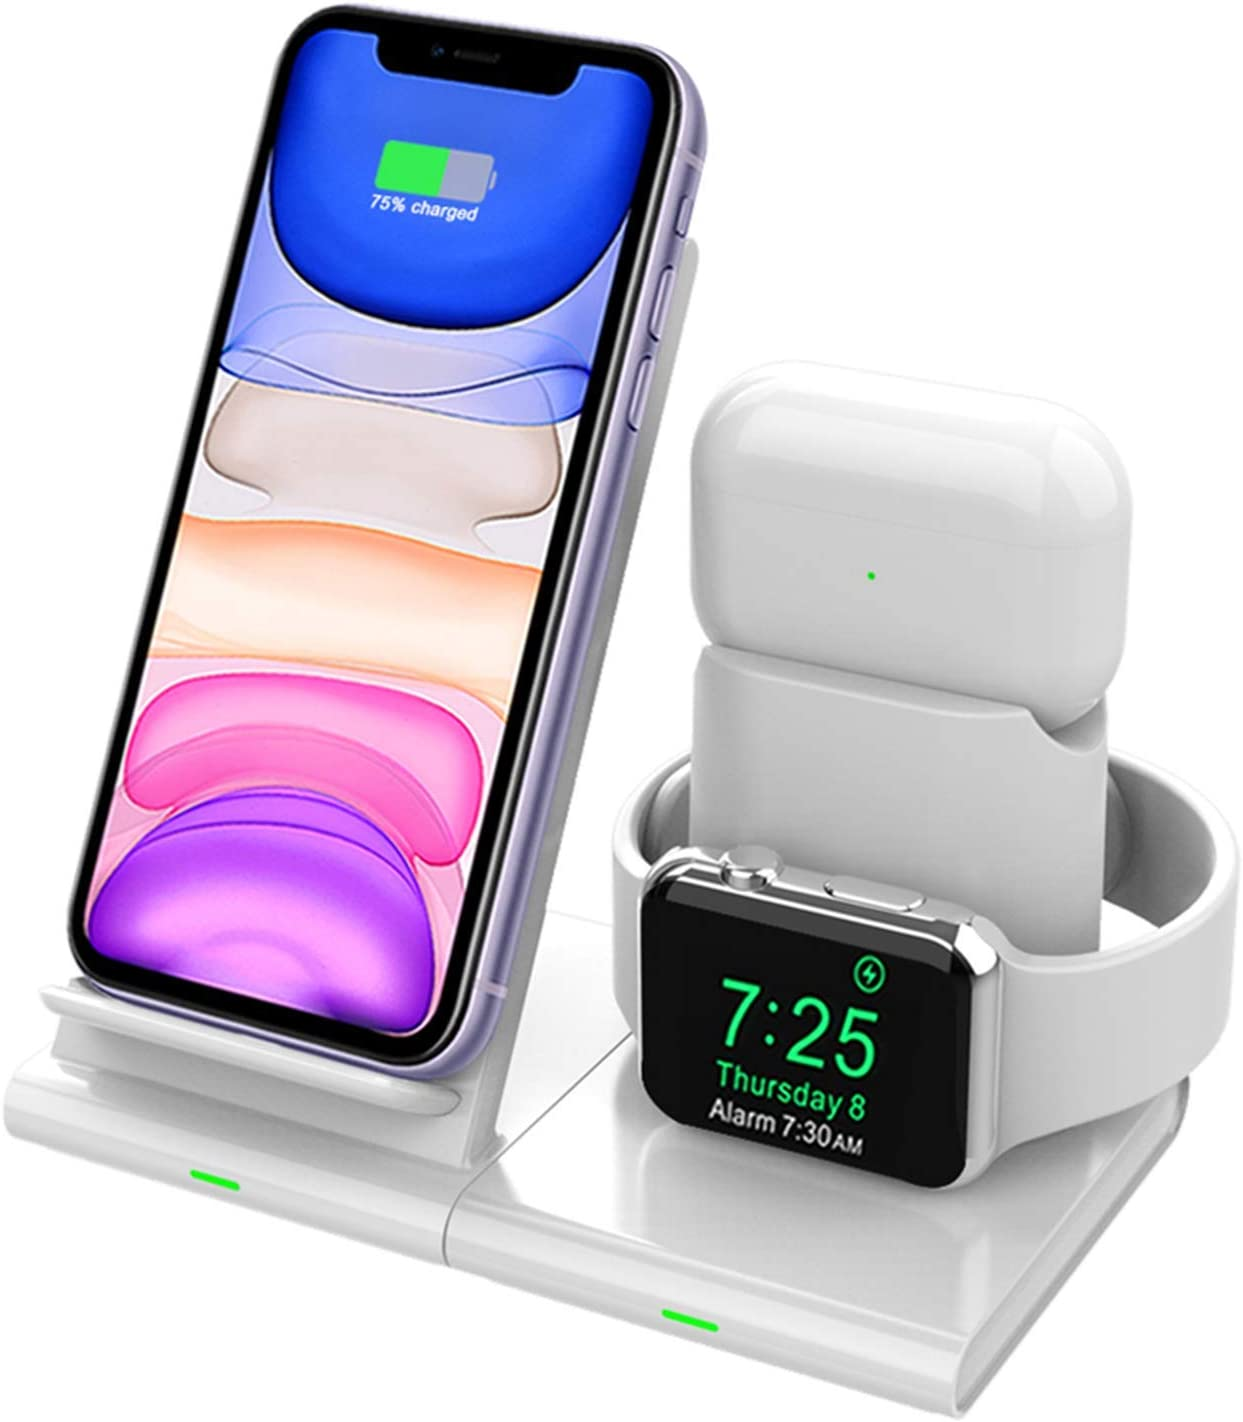 Hoidokly Cargador Inalámbrico, 3 en 1 Soporte de Carga para iPhone y Apple Watch, Base de Carga Rápida para iWatch 1/2/3/4/5, AirPods, iPhone 11/11 Pro MAX/XS MAX/XR/X(No Cable de Carga del iWatch)